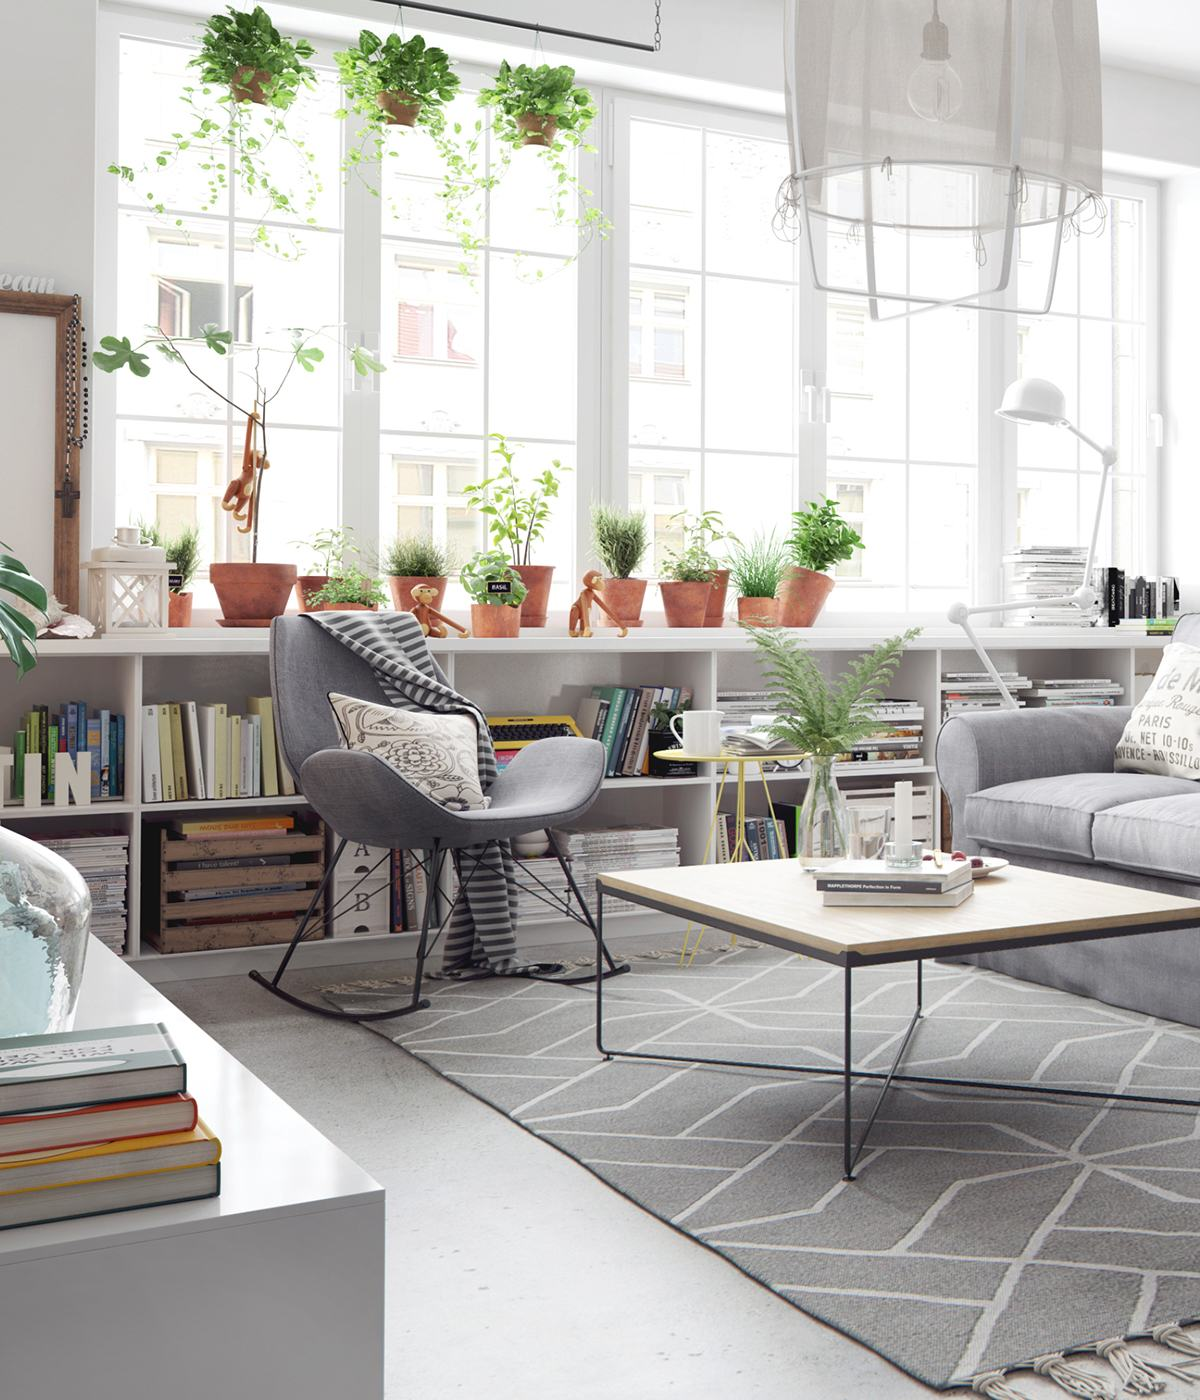 Bright and cheerful 5 beautiful scandinavian inspired for Interior design items for home